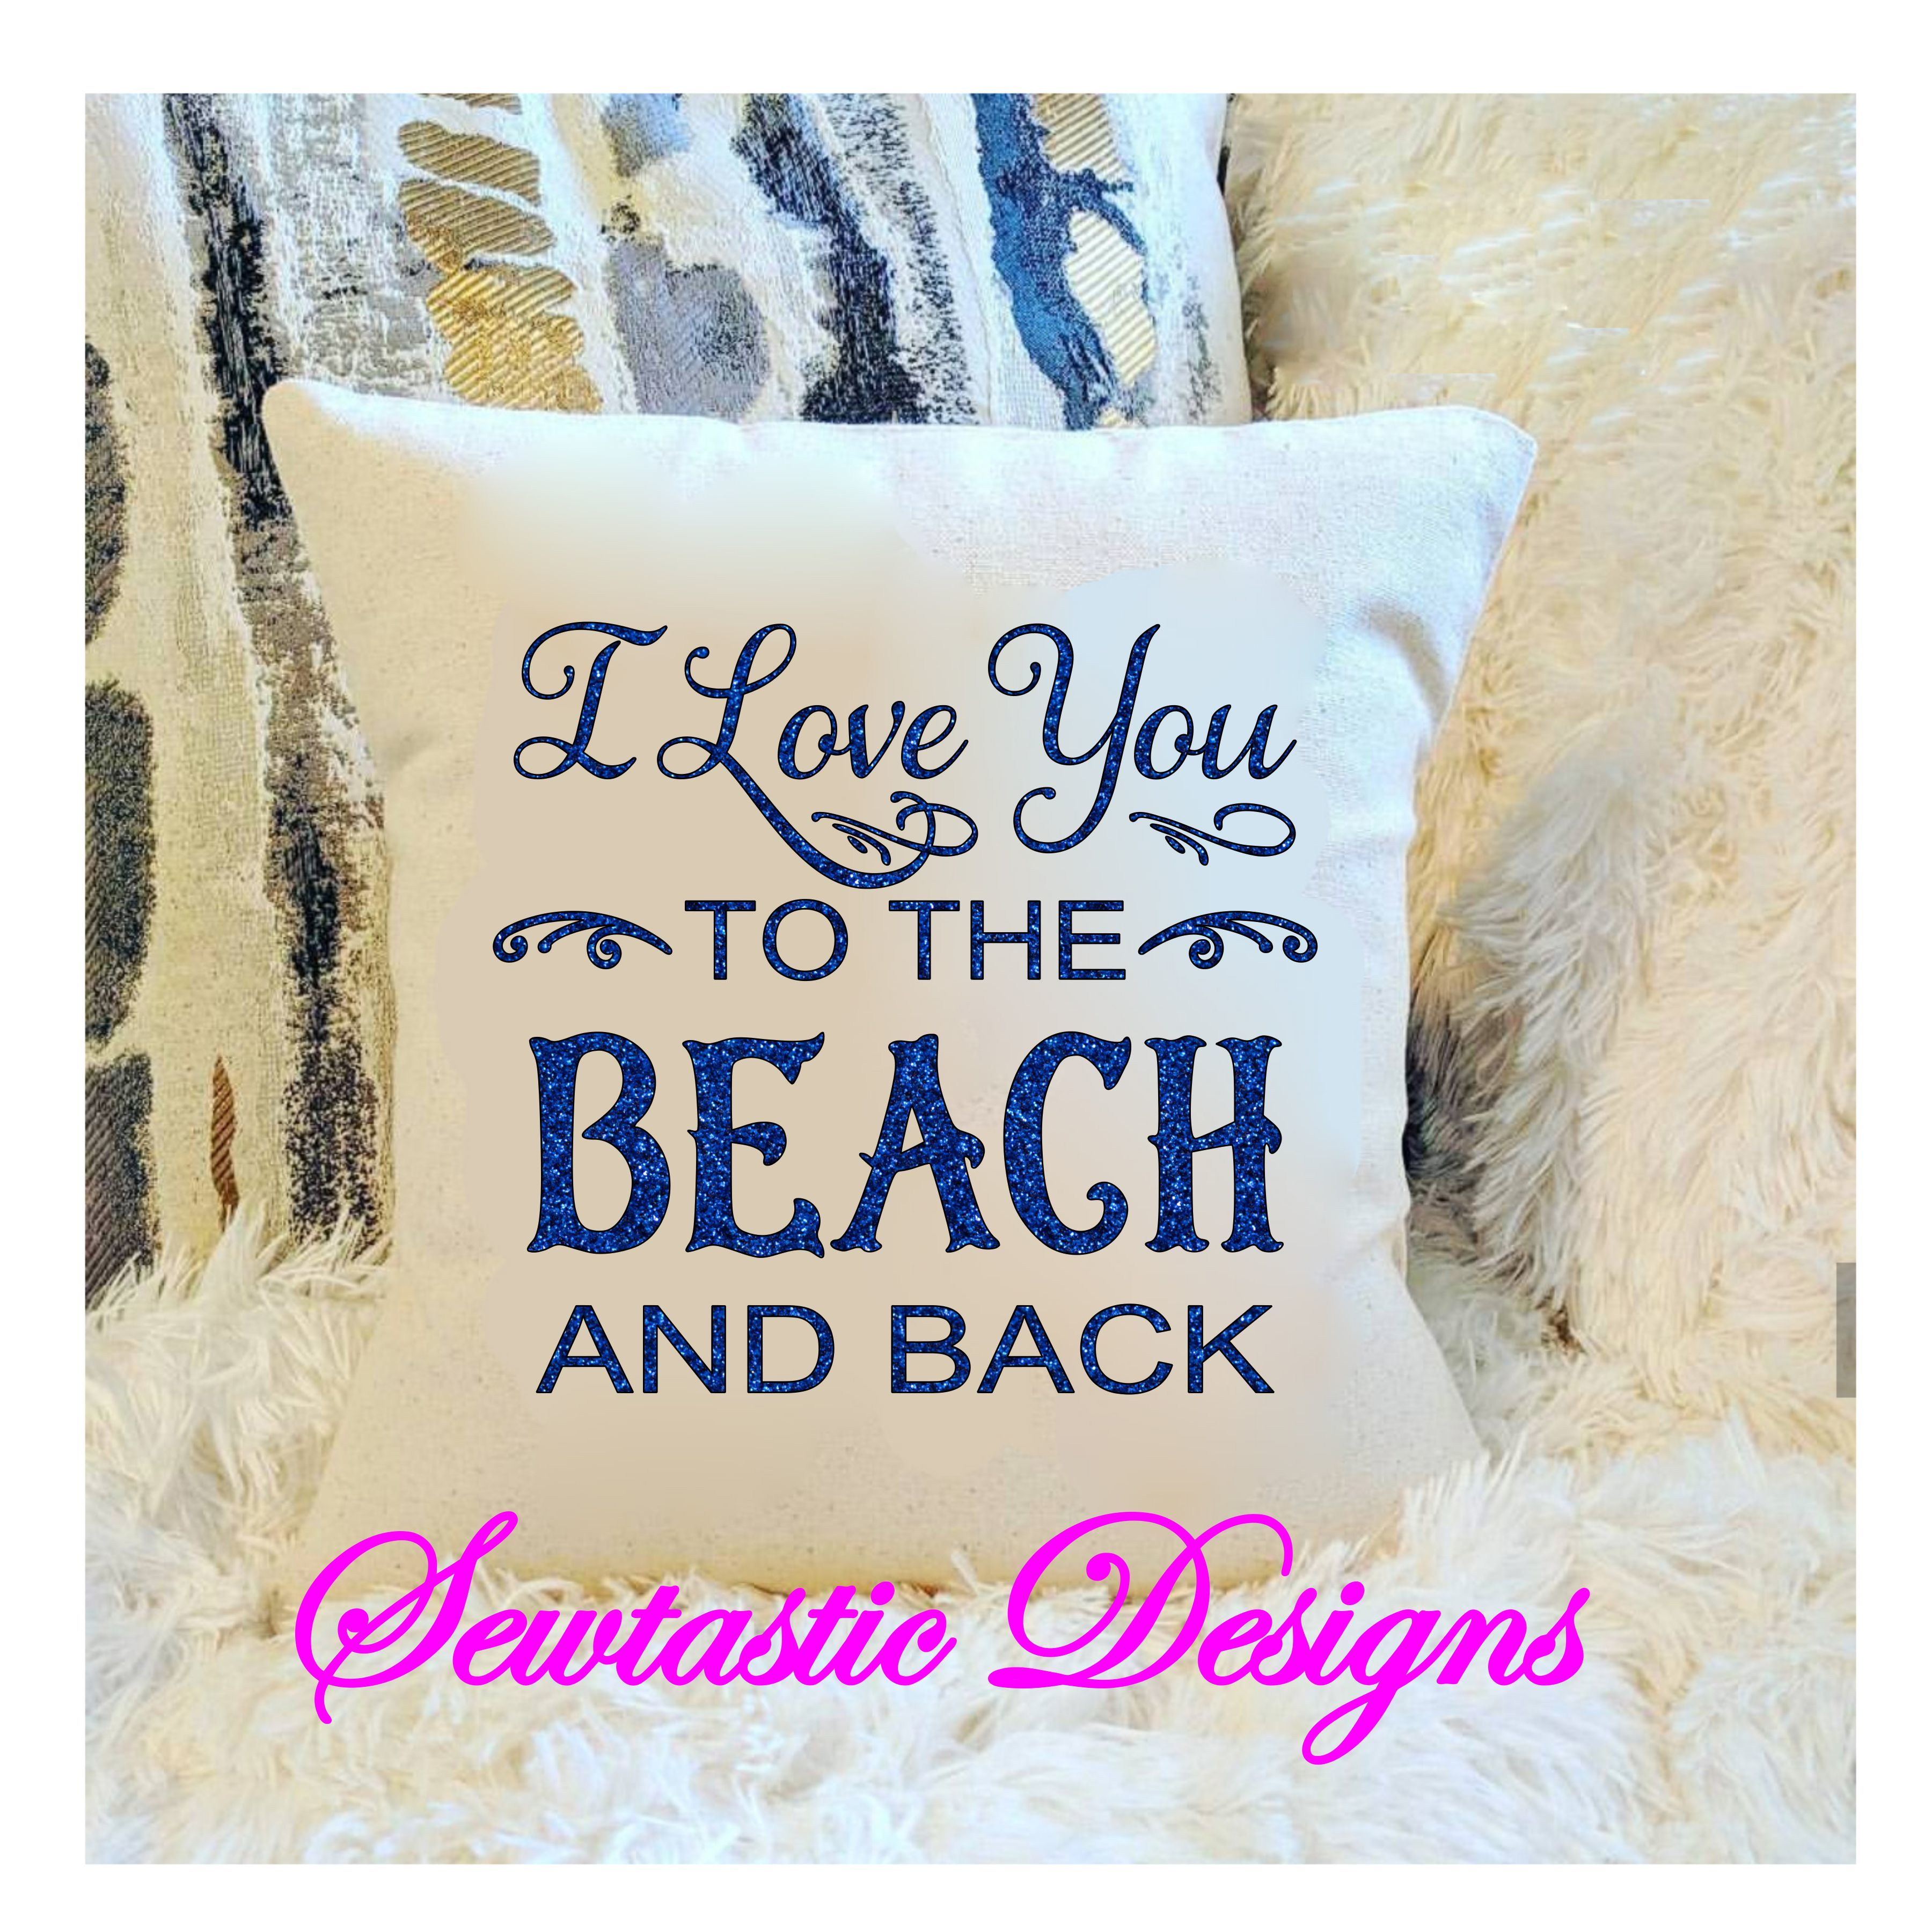 I Love You To The Beach And Back Svg I Love You Svg Beach Svg Cut File Iron On Decal Cricut Silhouette Scanncut Many More